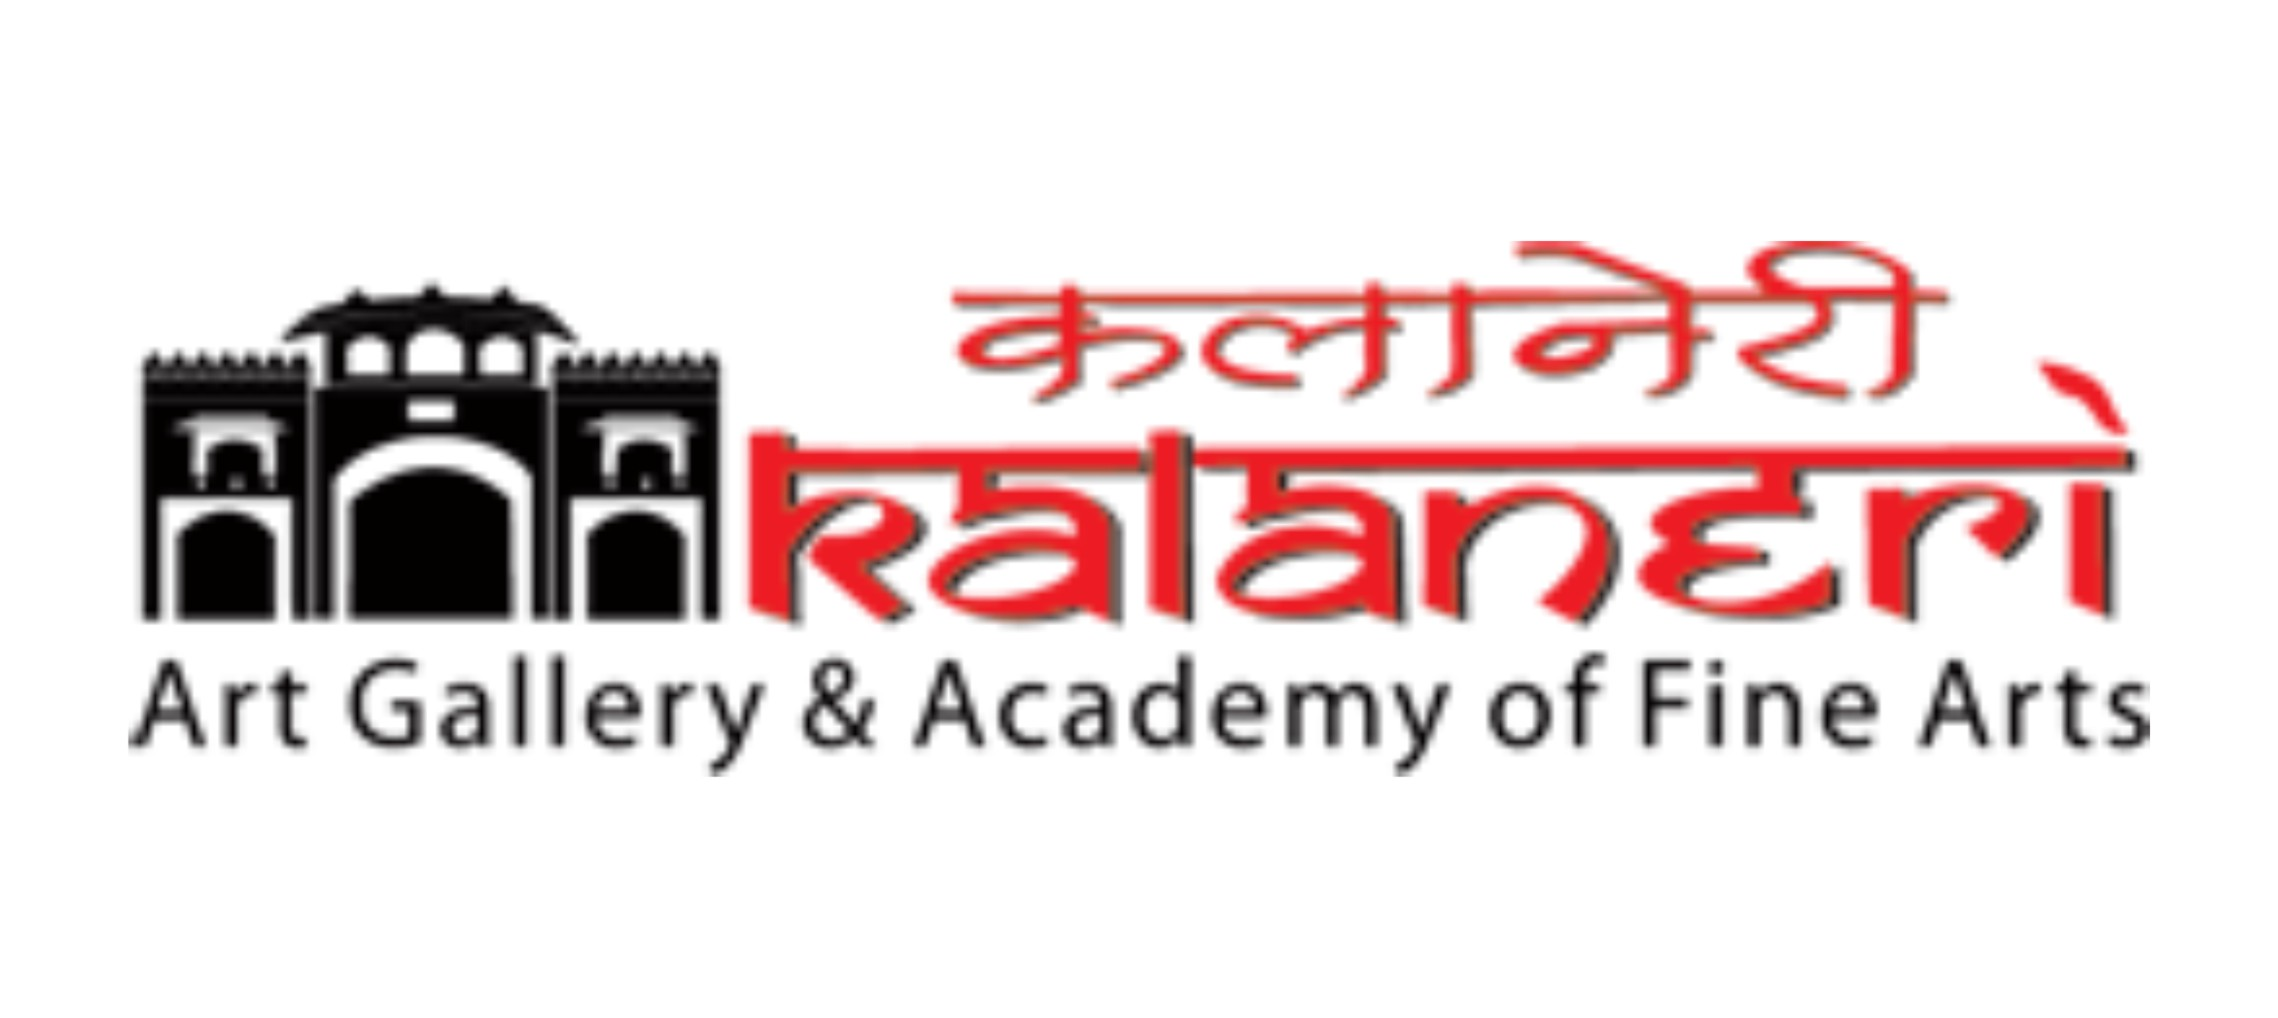 Kalaneri Art Gallery & Academy of Fine Arts